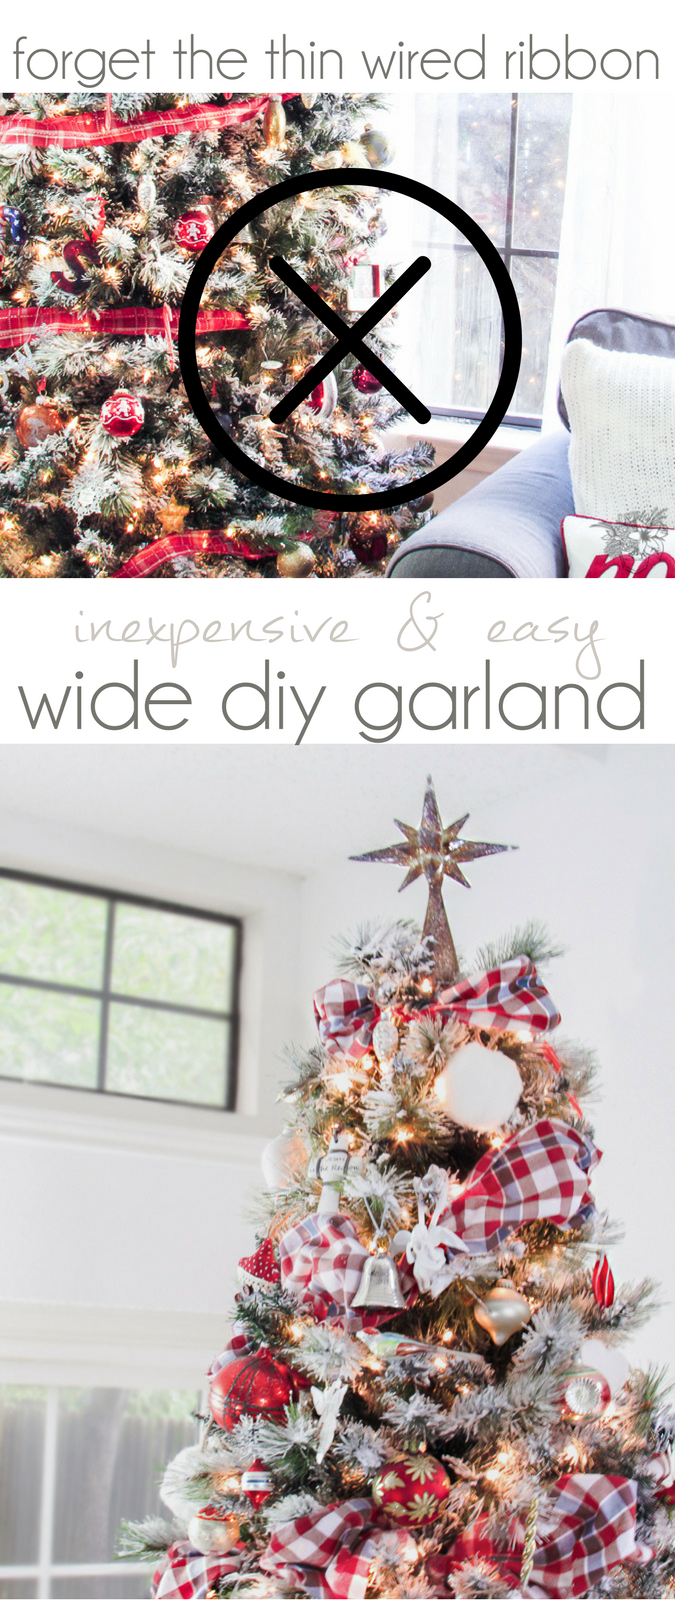 Fast, Inexpensive and Easy DIY Fabric Garland | "|675|1600|?|37207c67cbf928d4a321b64b35923715|False|UNLIKELY|0.34676042199134827